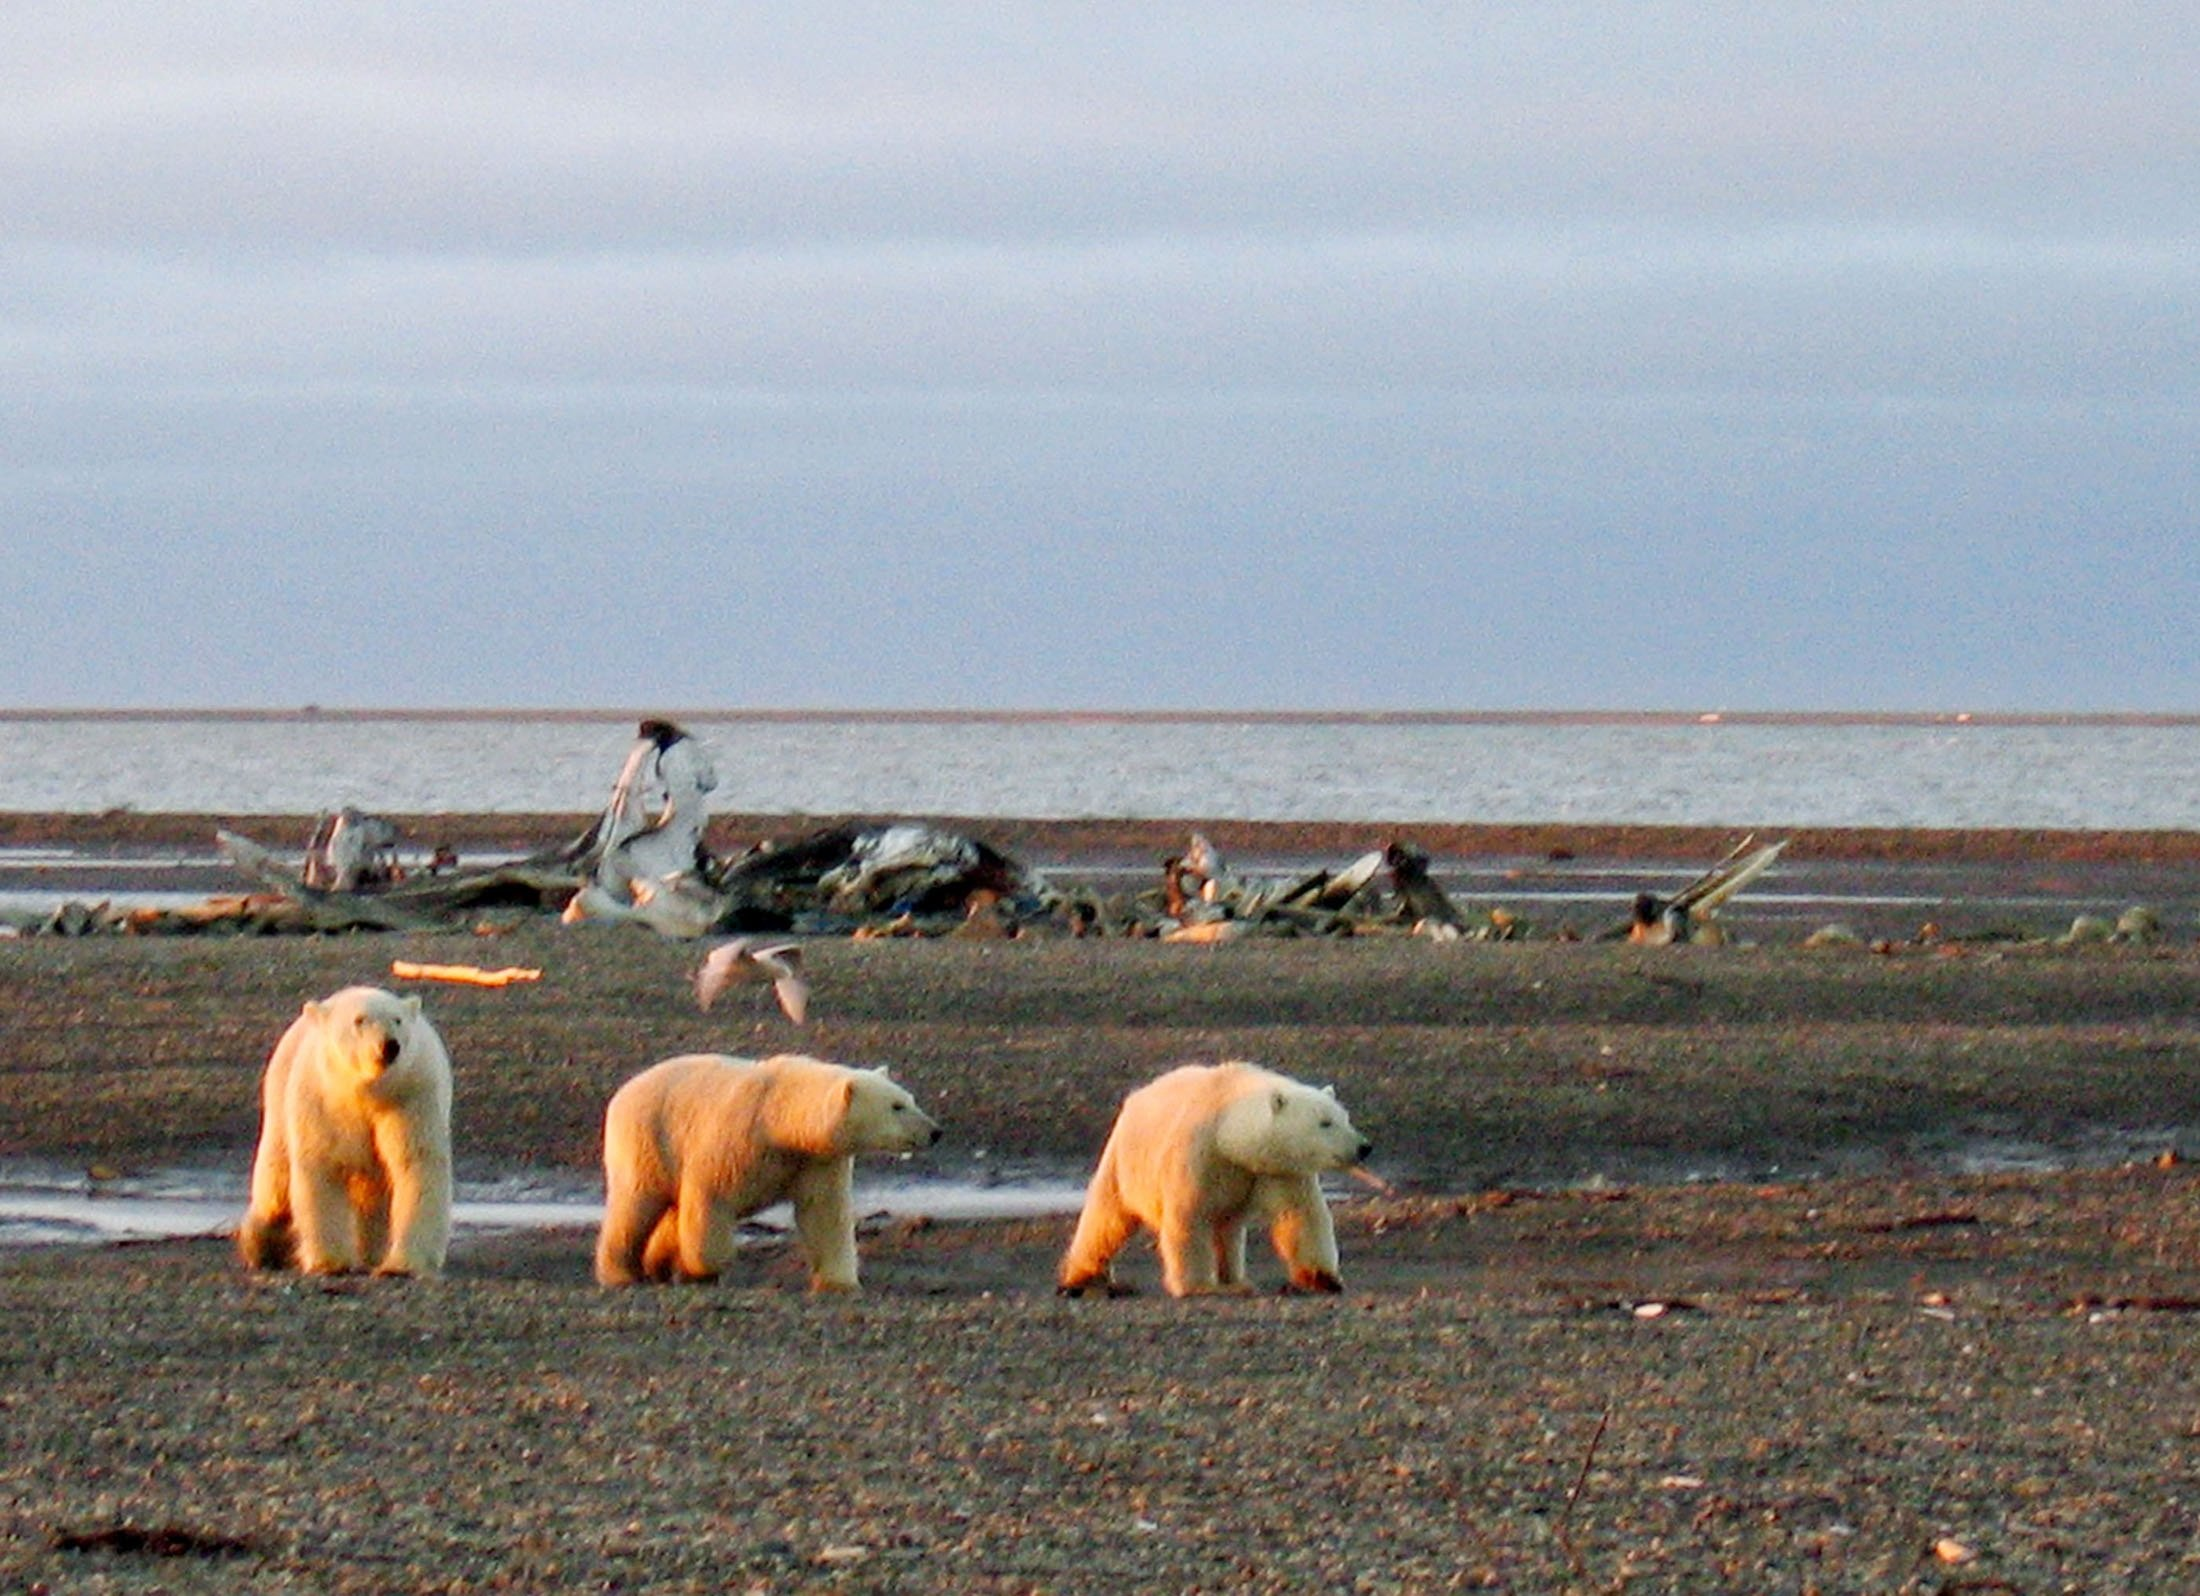 Three polar bears are seen on the Beaufort Sea coast within the 1002 Area of the Arctic National Wildlife Refuge in this undated handout photo provided by the U.S. Fish and Wildlife Service Alaska Image Library on December 21, 2005. (U.S. Fish and Wildlife Service Alaska Image Library / Handout via Reuters)